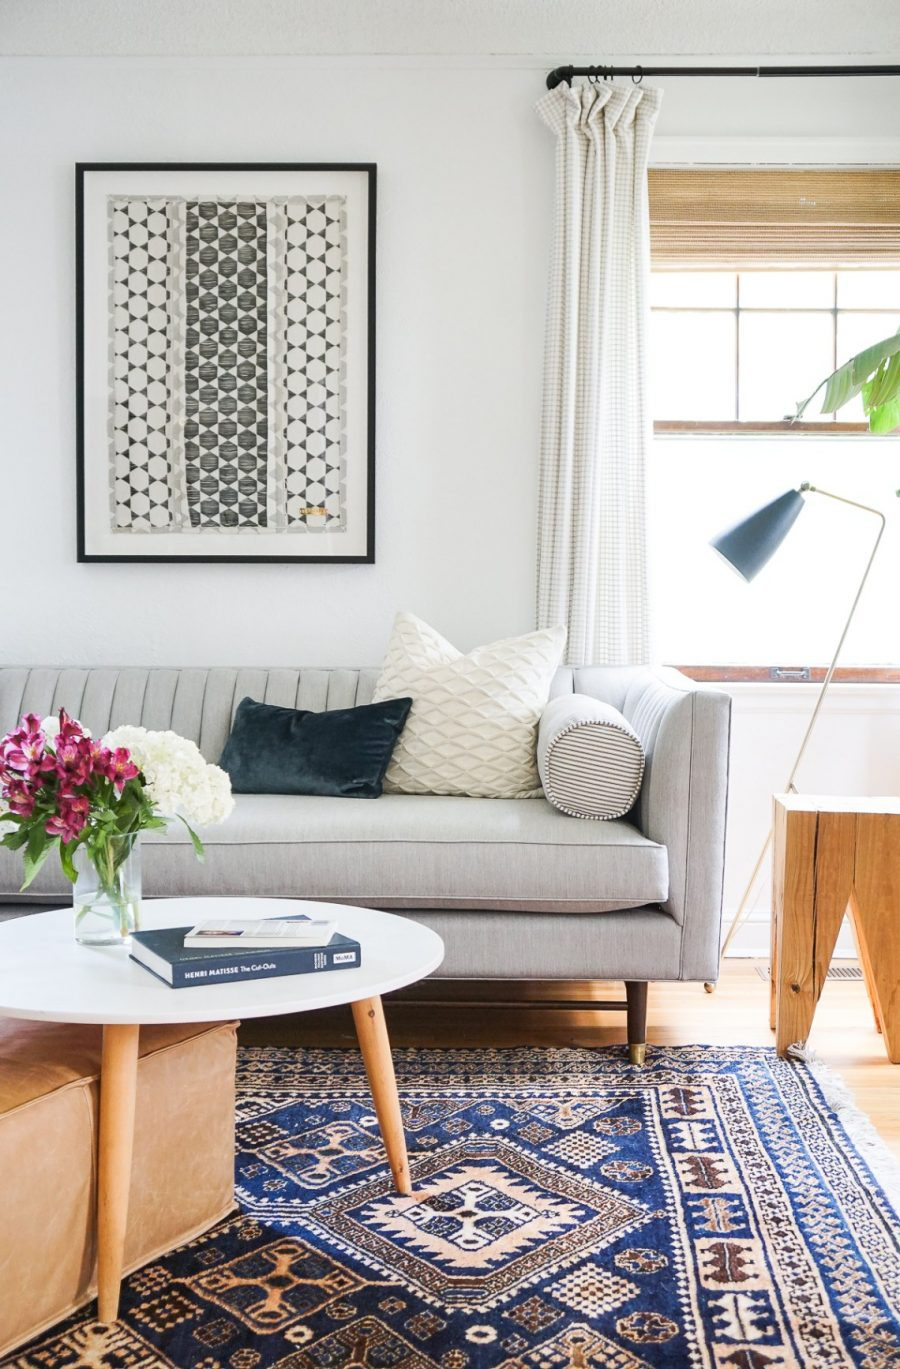 Swell Daily Find Joybird Chelsea Apartment Sofa Copycatchic Bralicious Painted Fabric Chair Ideas Braliciousco